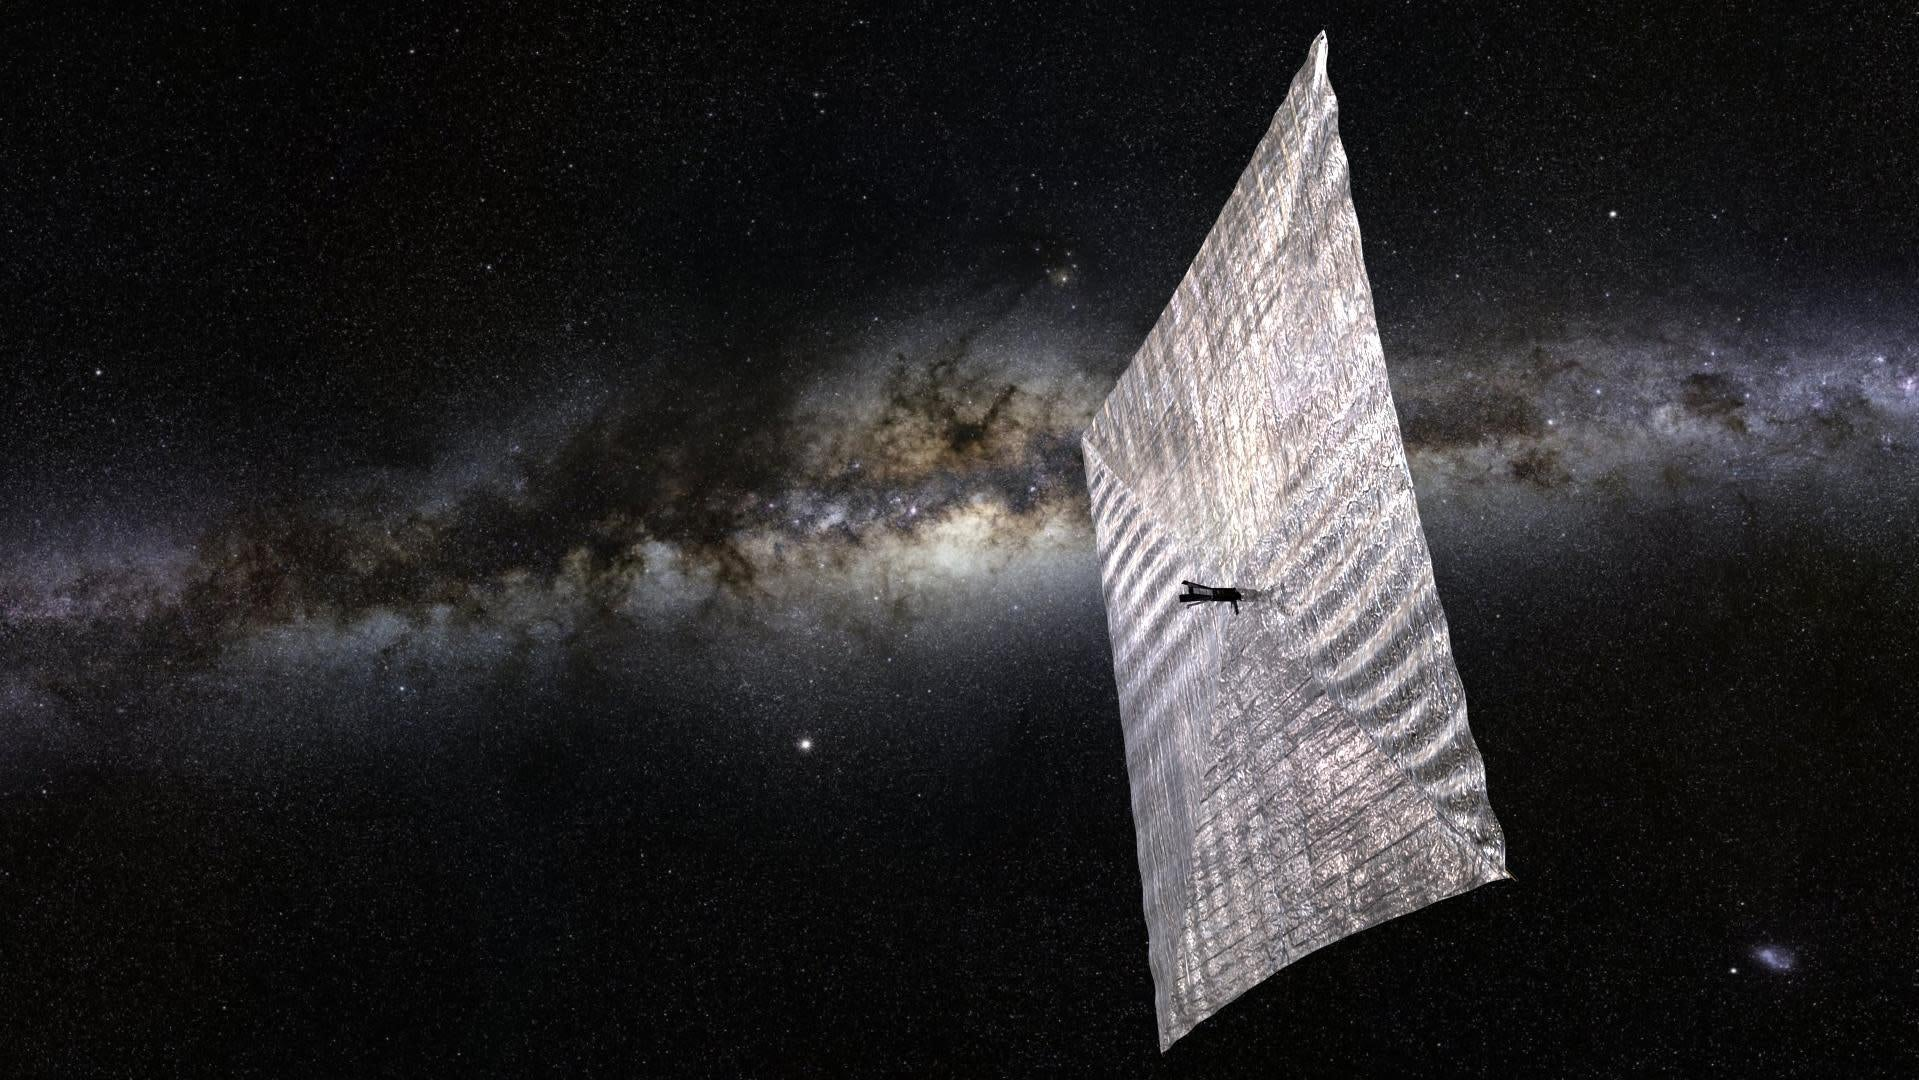 How To Track The LightSail 2 As It 'Sails' Around Earth